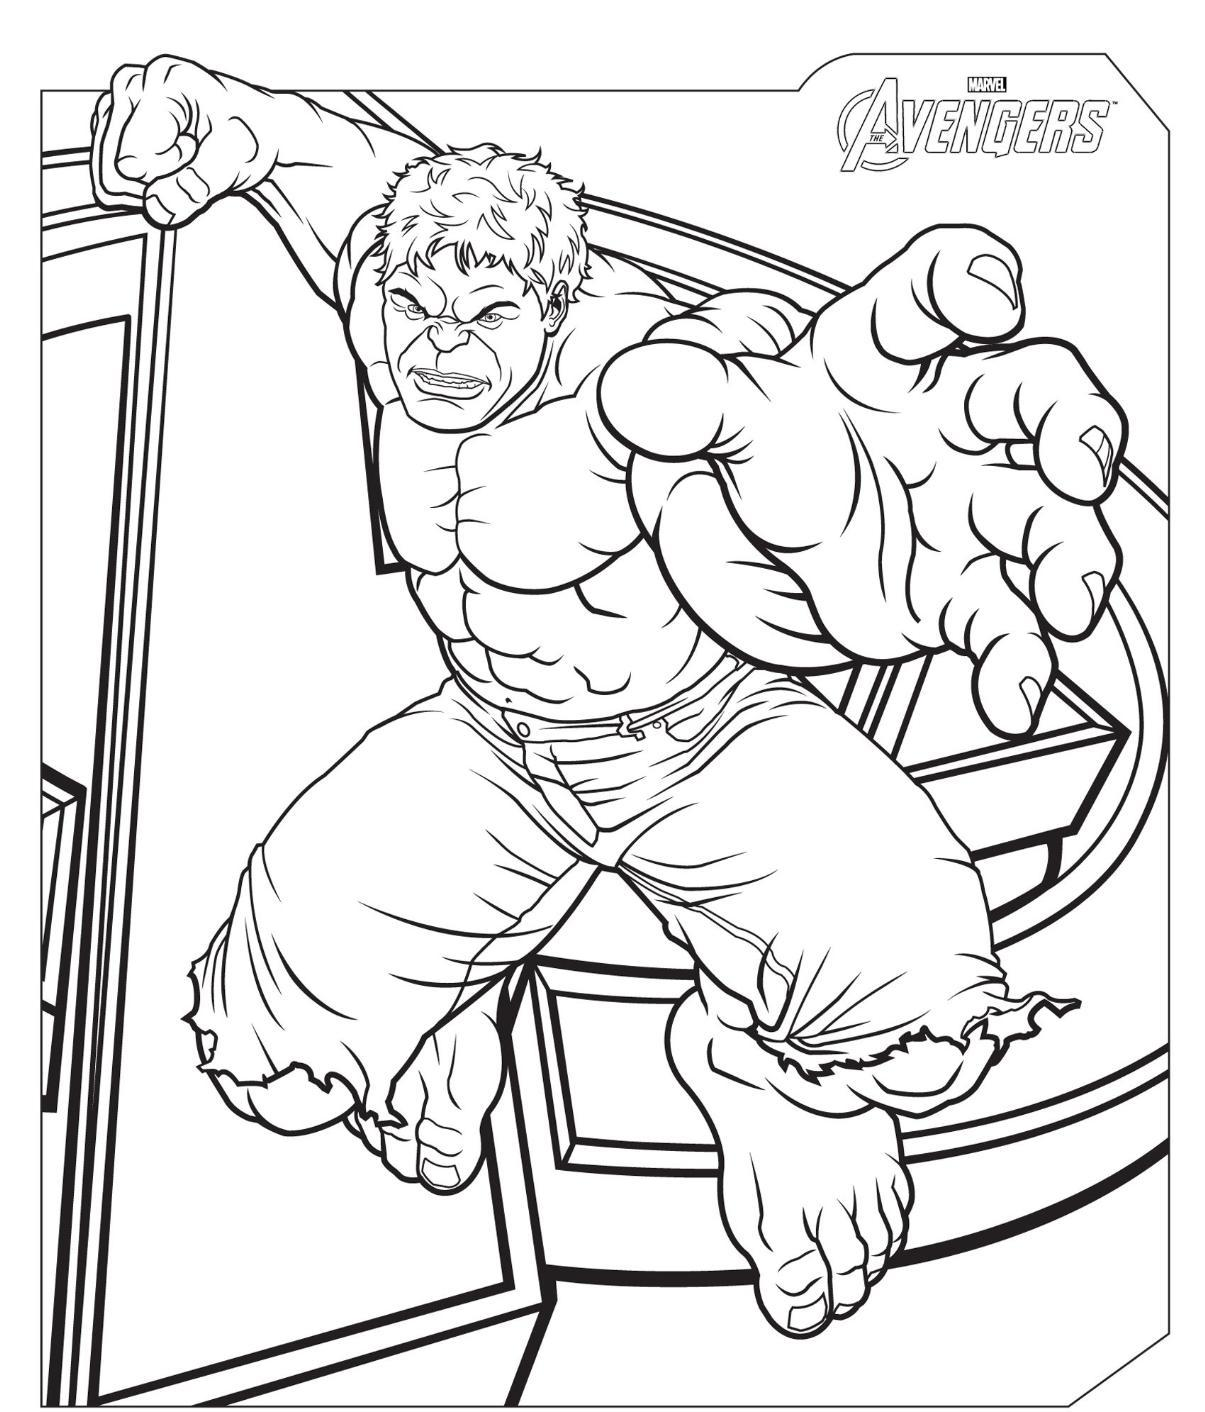 Avengers coloring pages to download